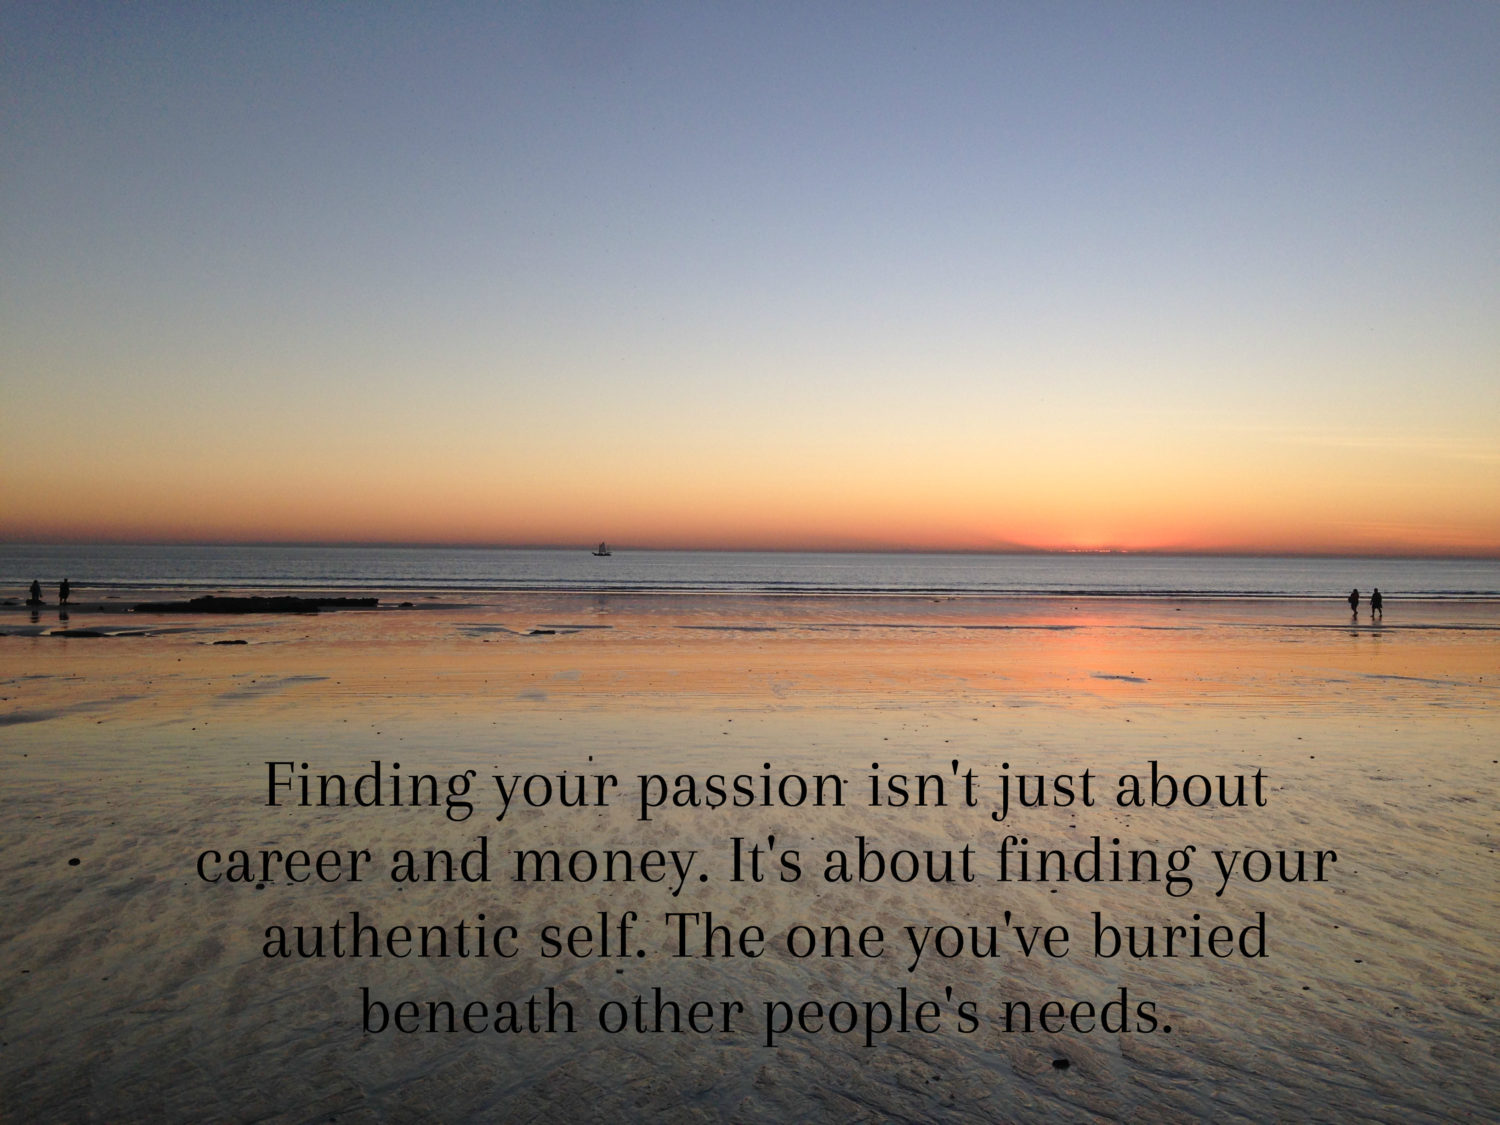 Fulfilling Your Passions